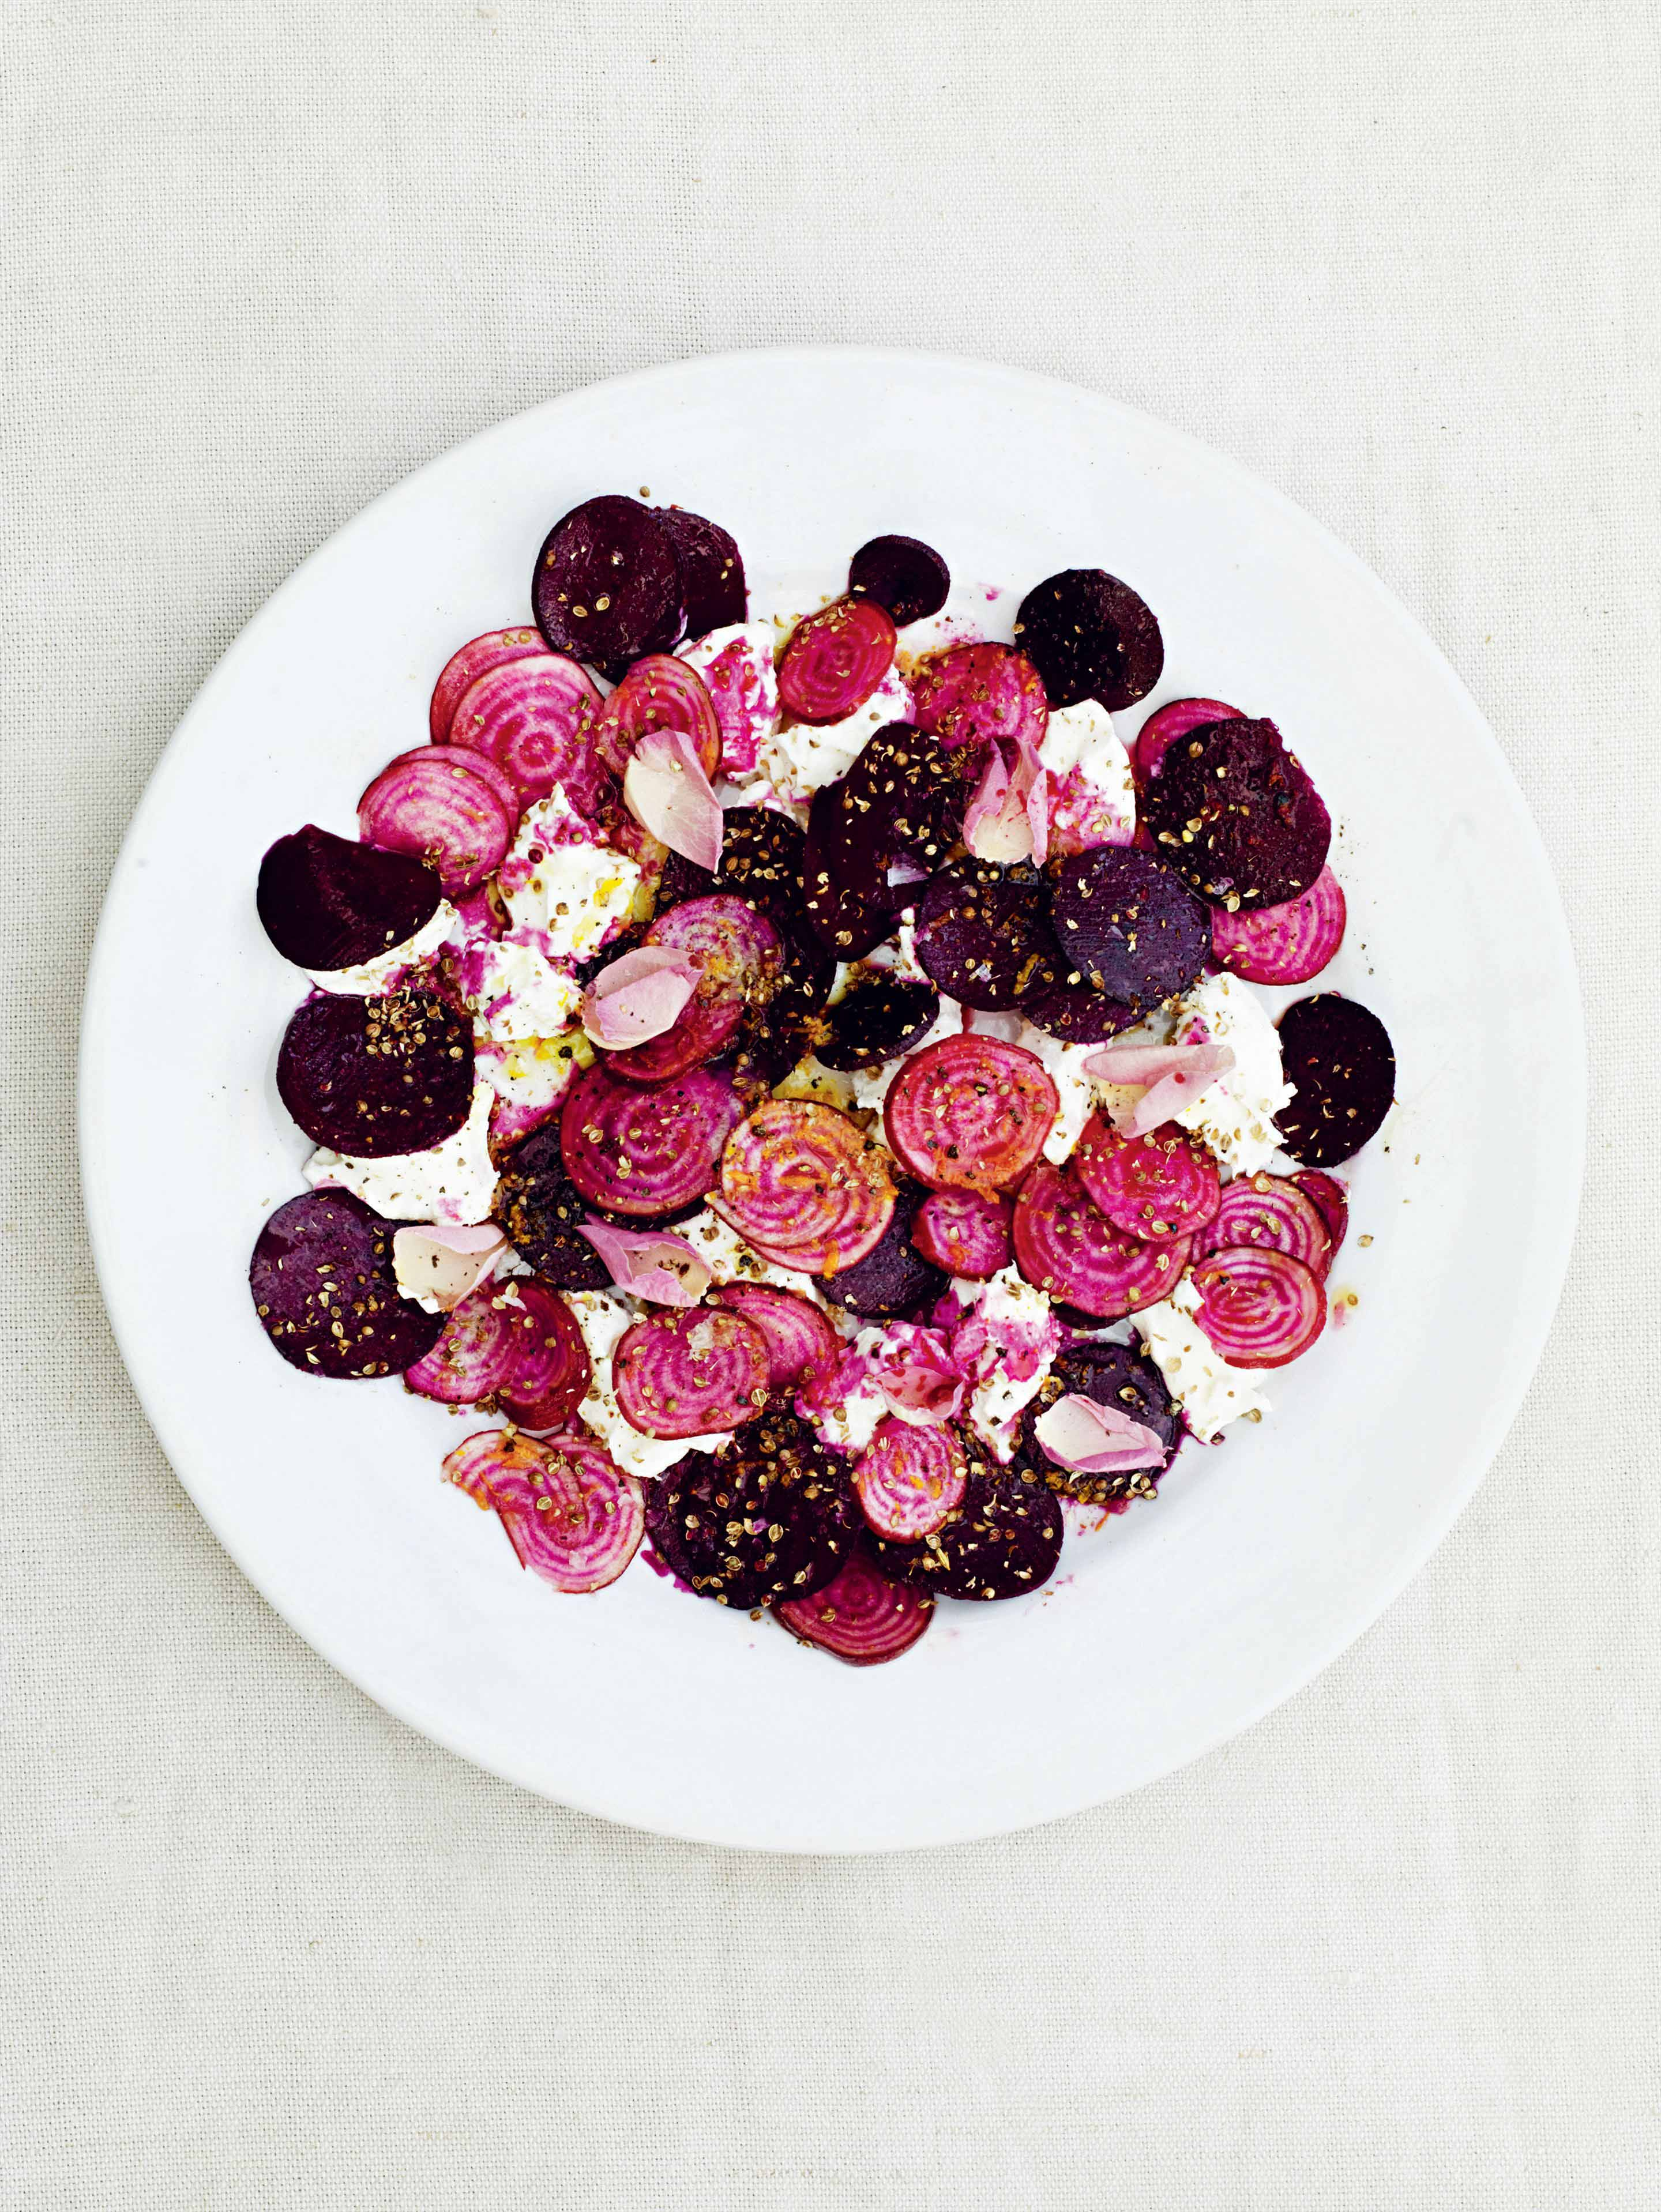 A salad of raw beetroot, curd & rose